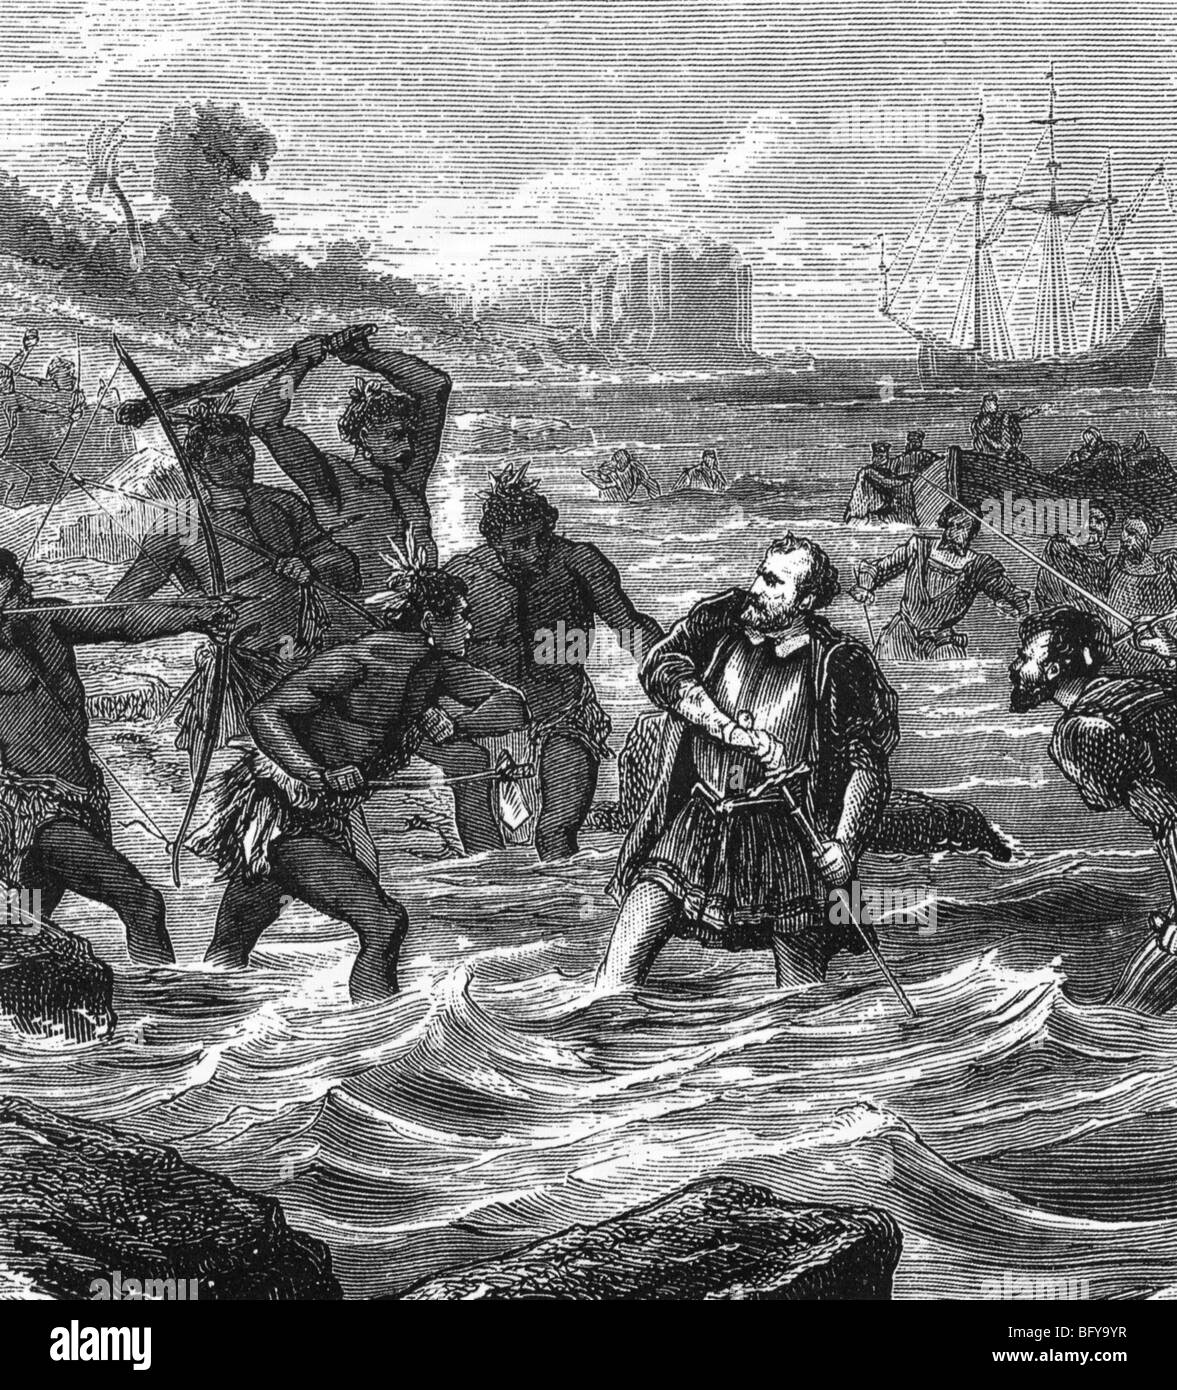 FERDINAND MAGELLAN Portugese navigator (c1480-1521) is killed in the Philippines. 19th century engraving - Stock Image